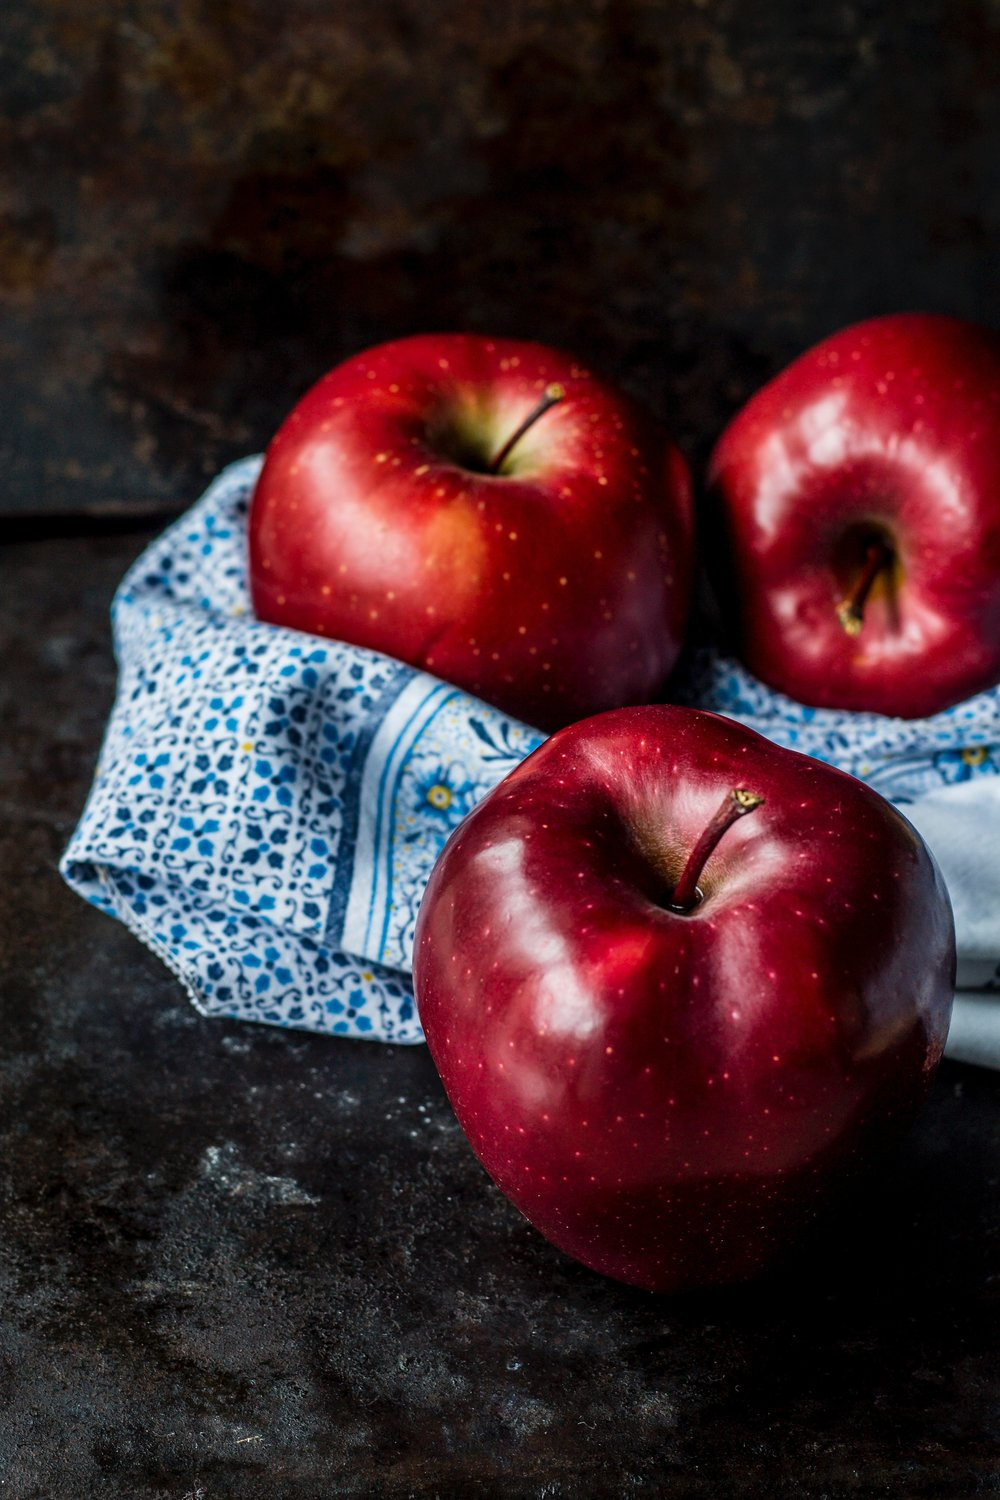 Apples are not only detoxifying but also good for lowering cholesterol, aiding in digestion and helping your skin. -